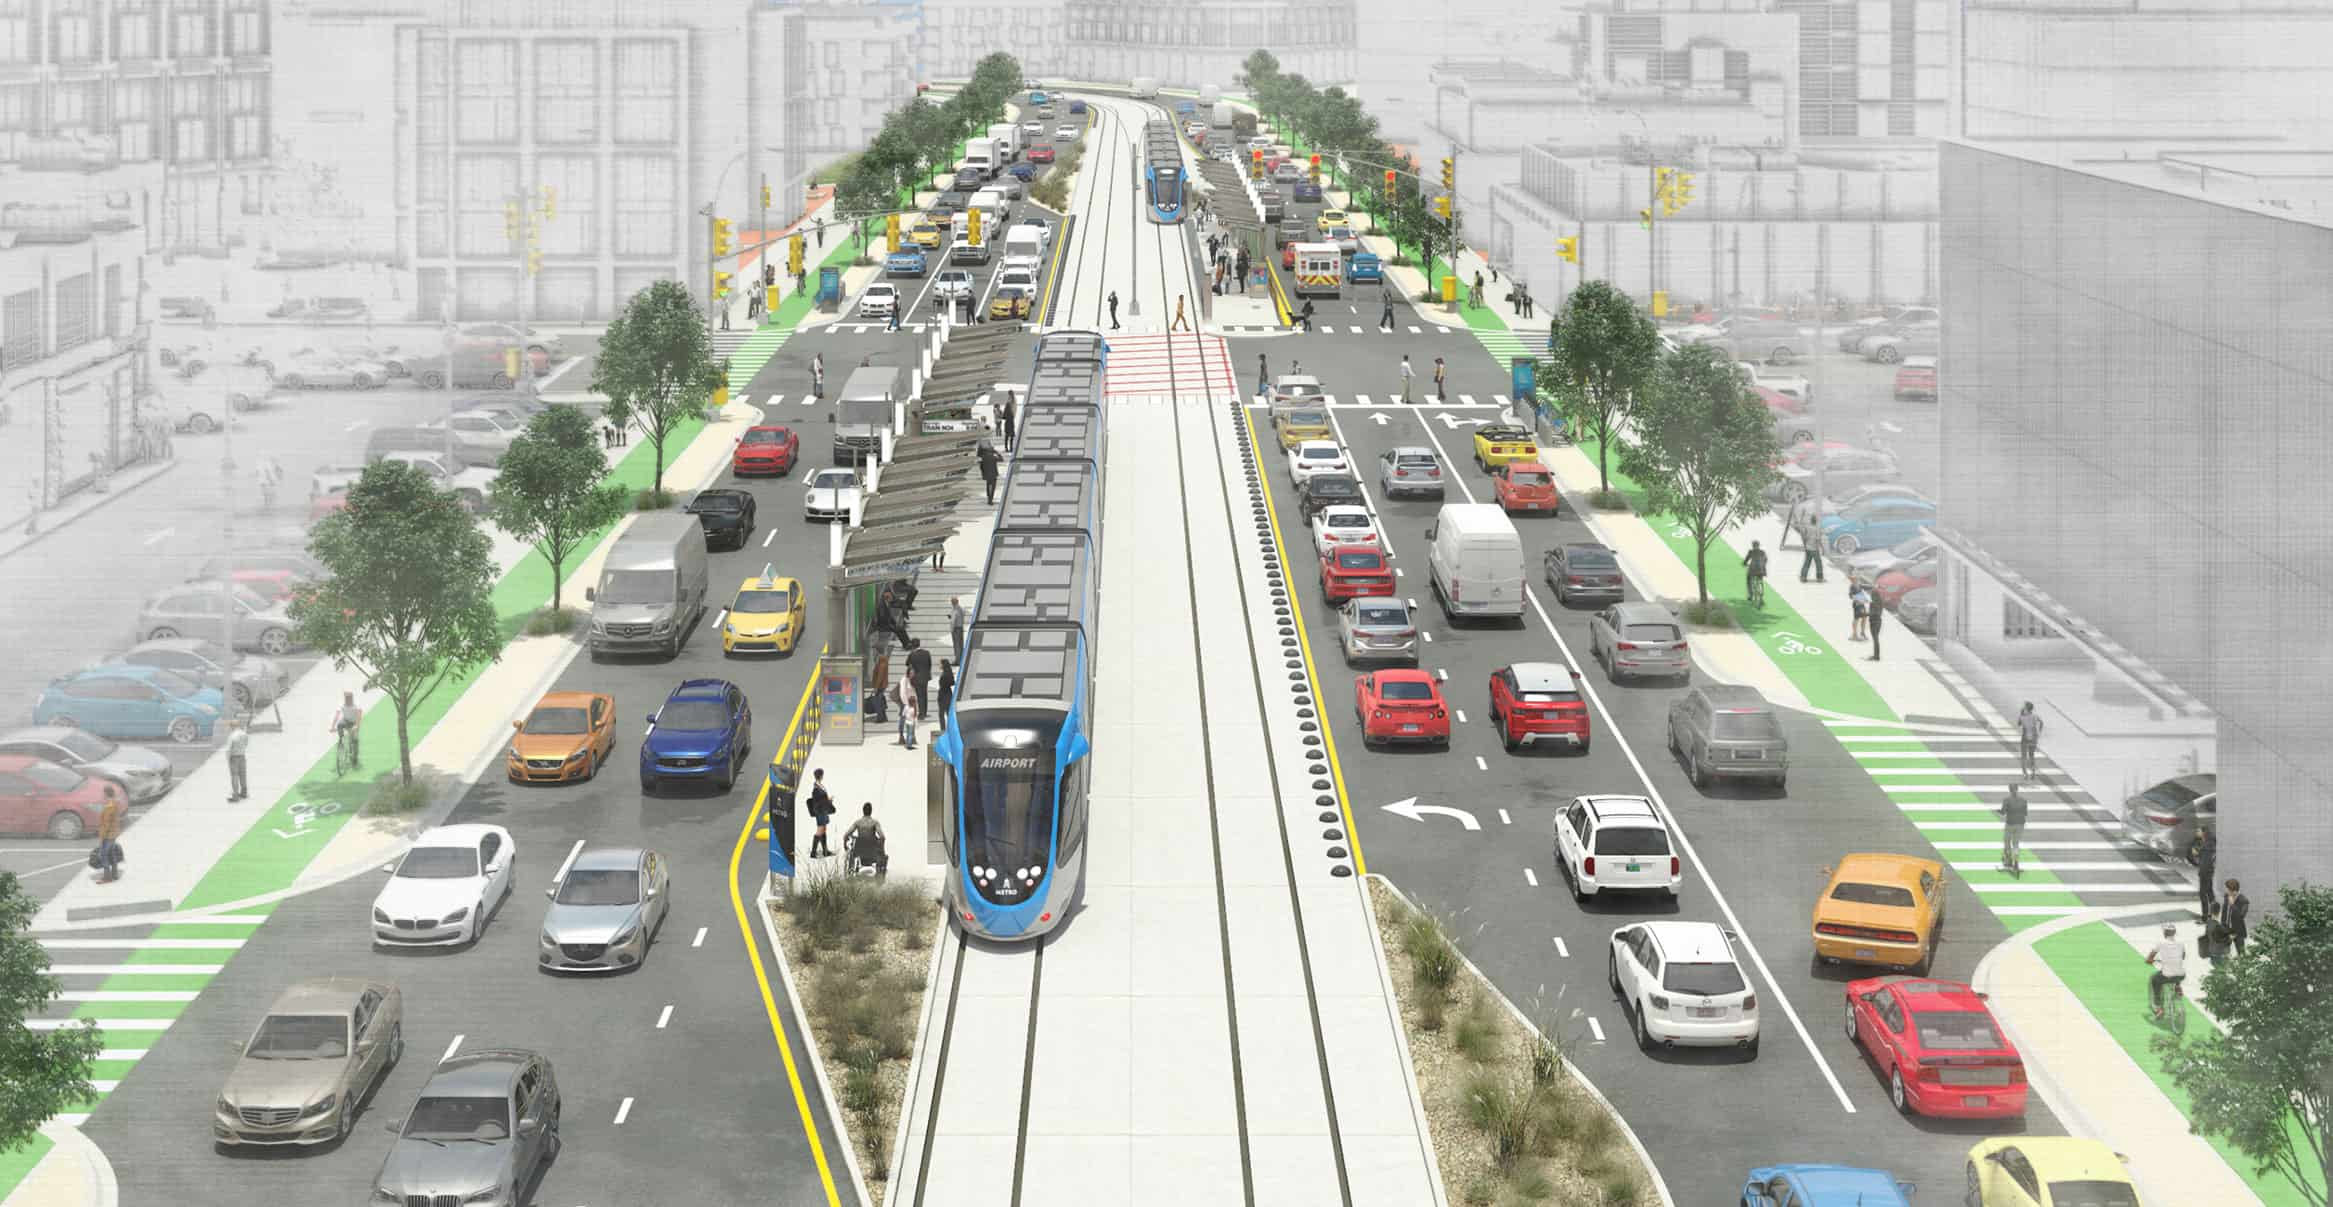 Artist rendering of light rail